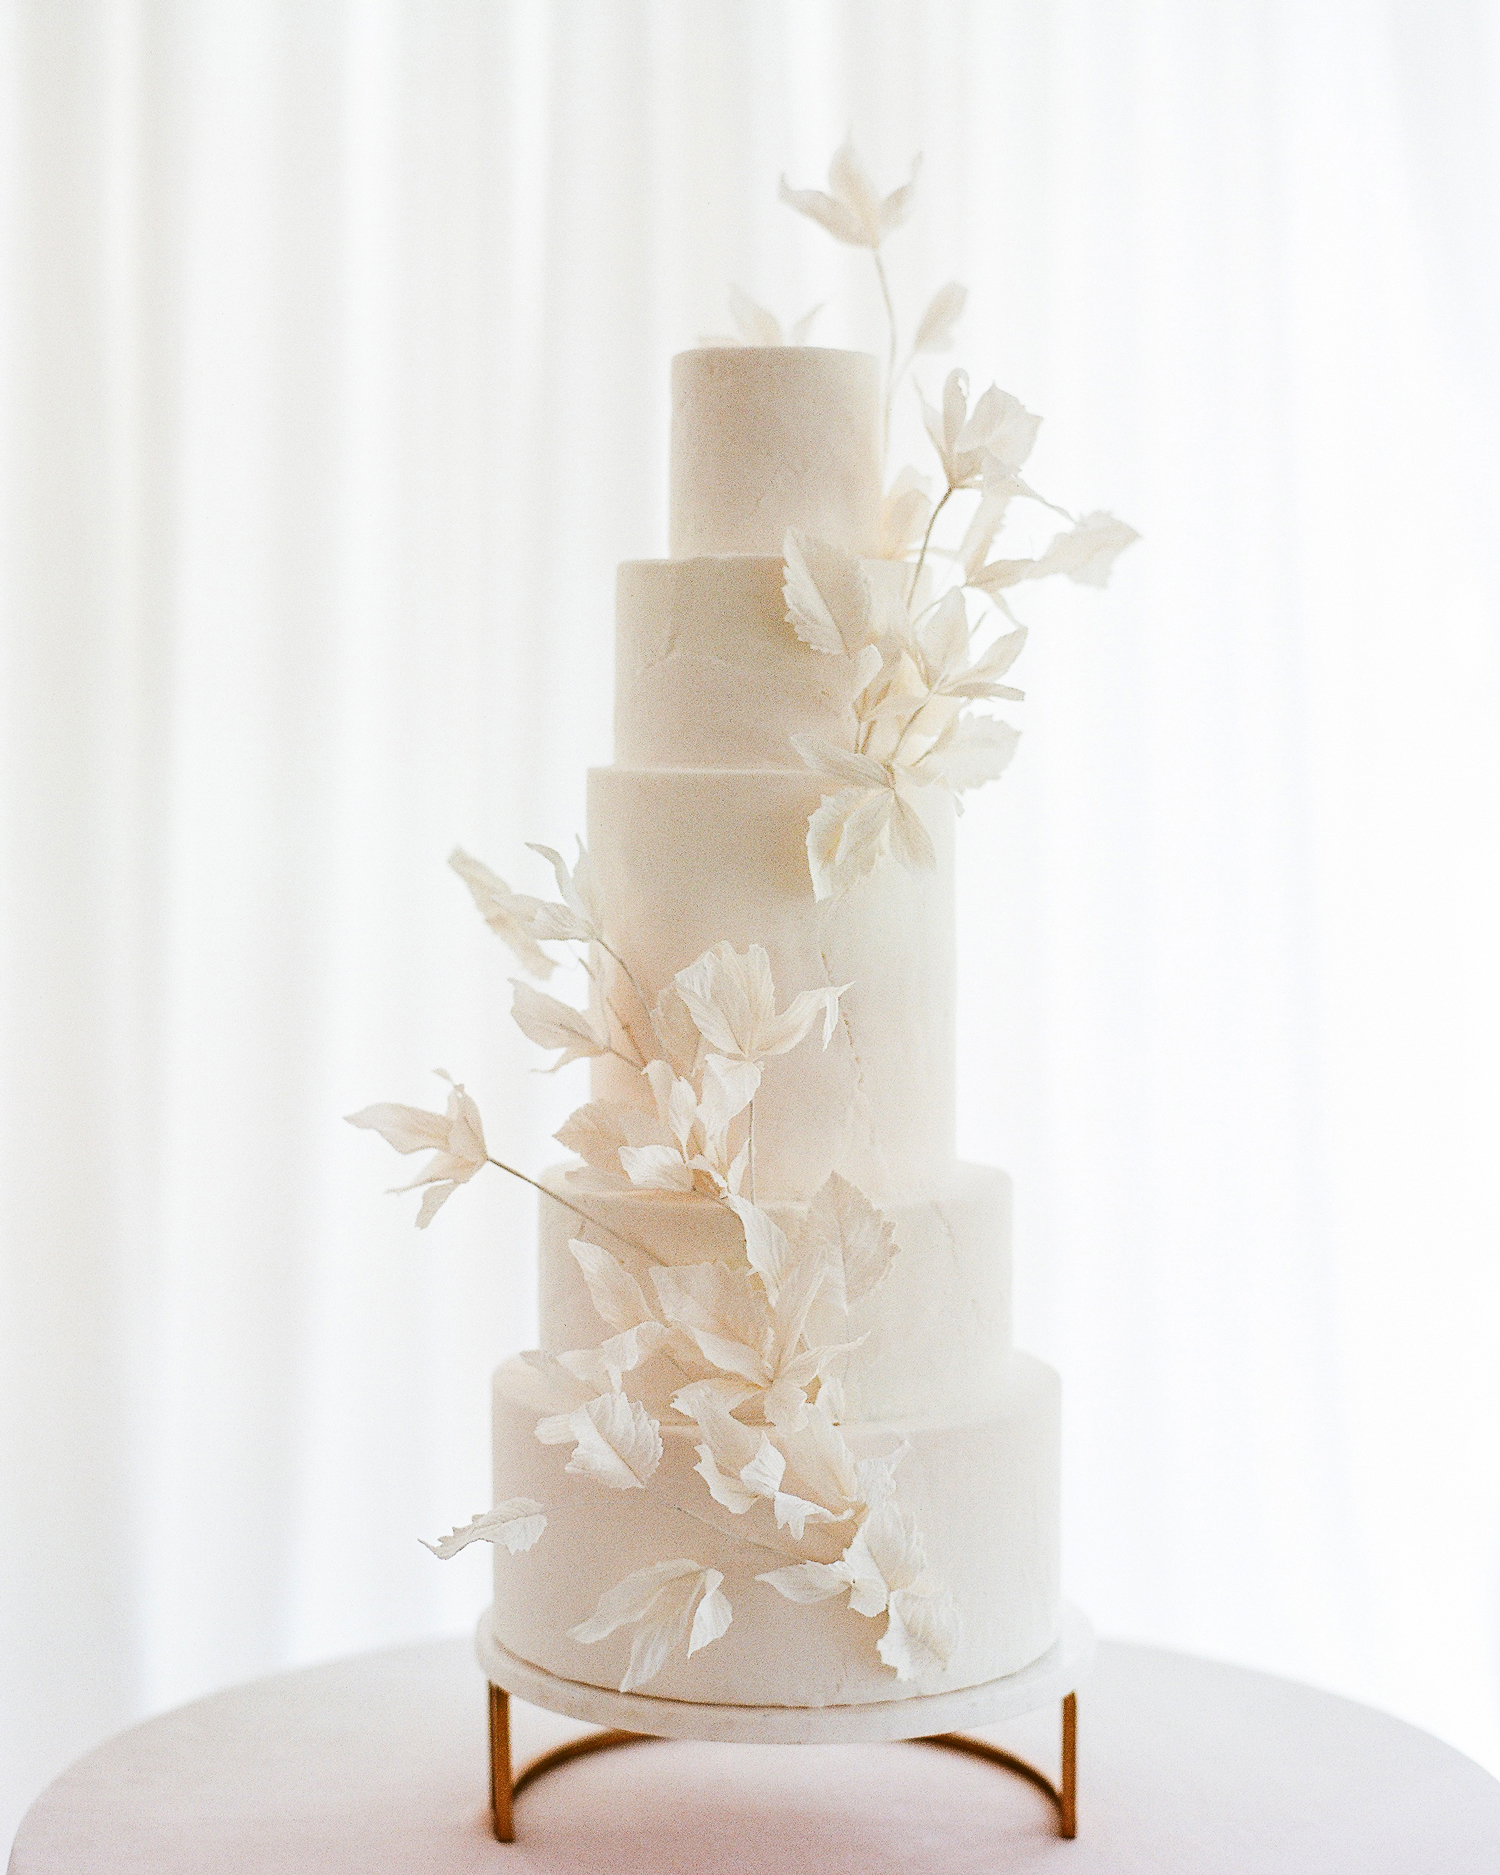 five tiered white frosted sugar flowers decor wedding cake